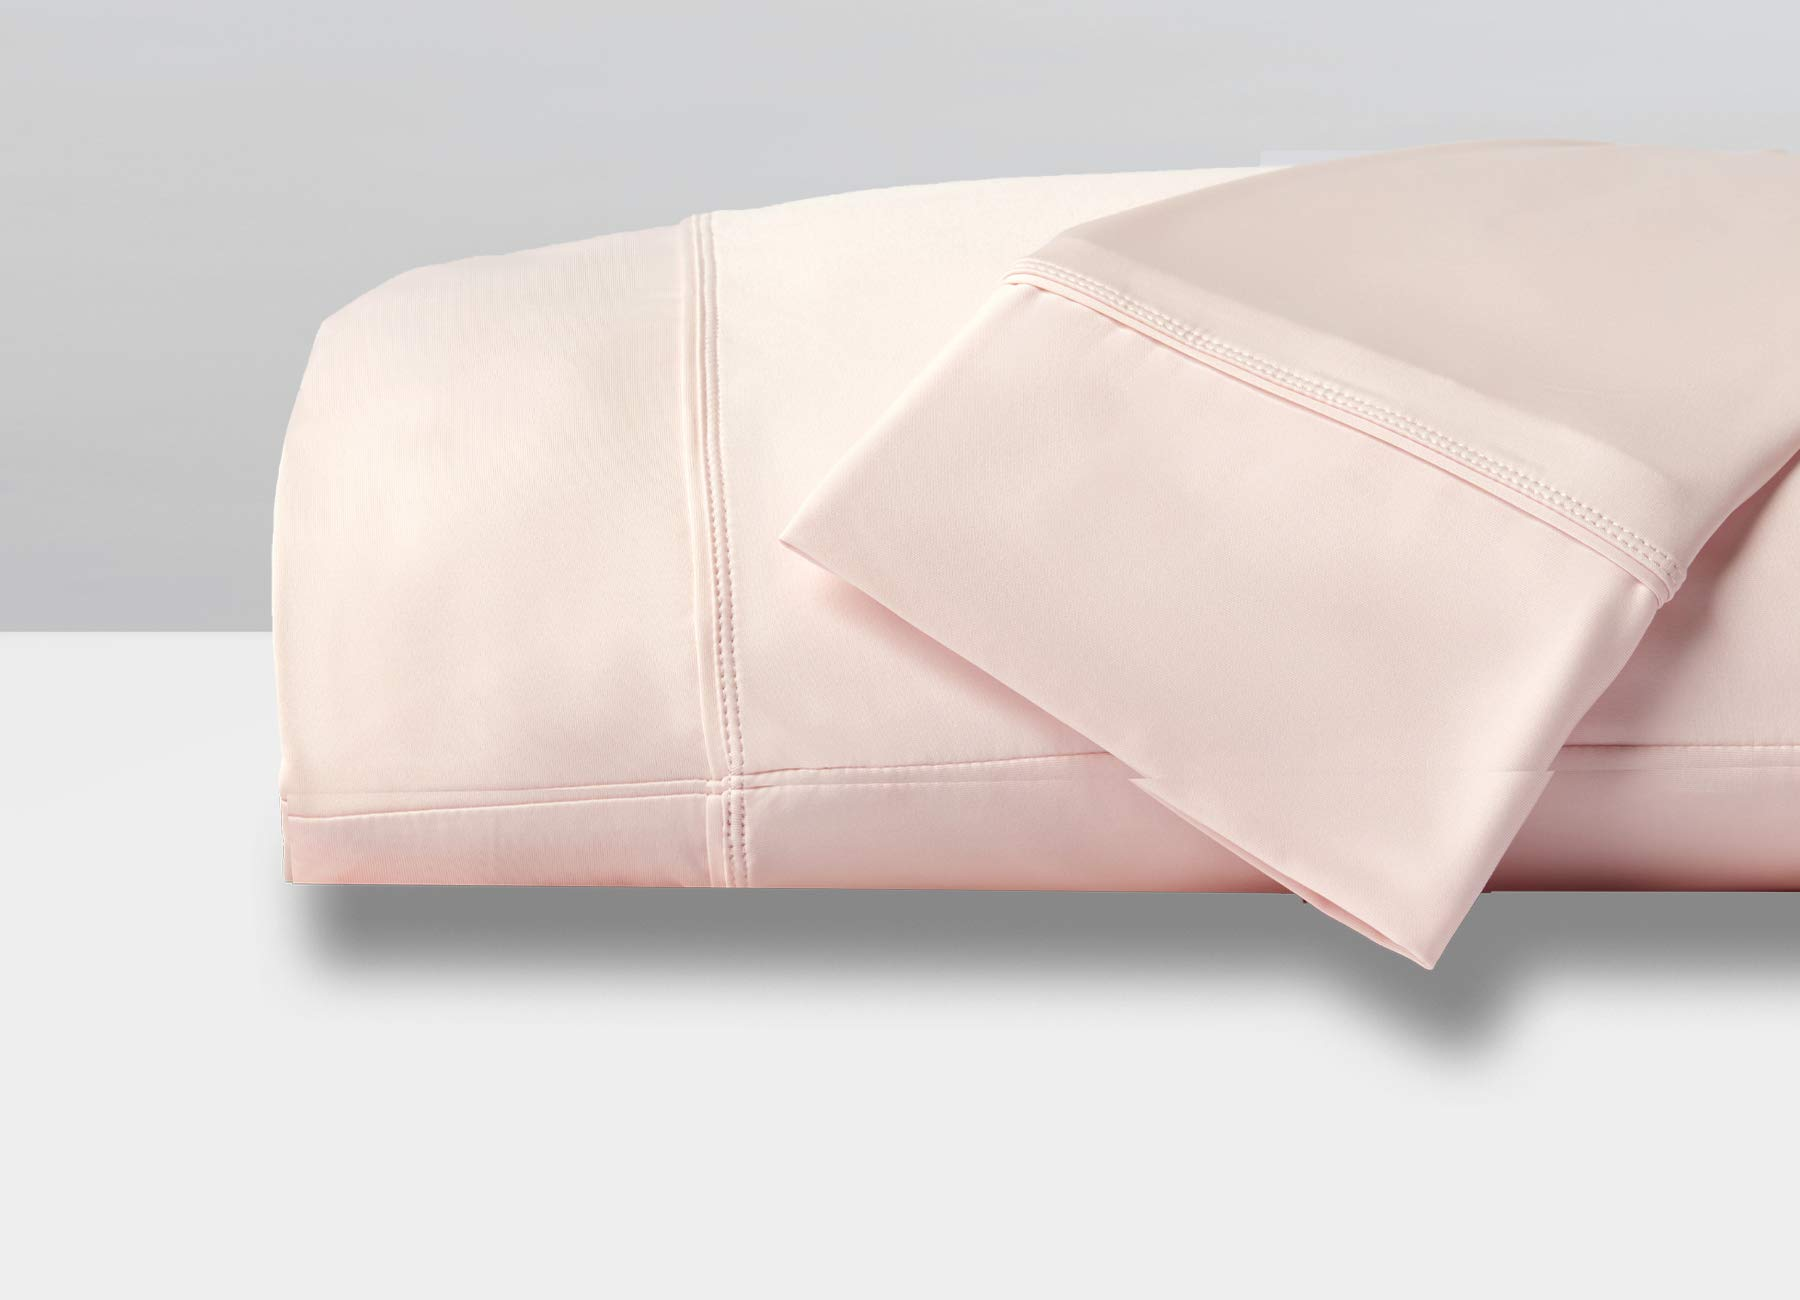 SHEEX - Original Performance Pillowcases (Set of 2), Ultra-Soft Fabric Transfers Body Heat and Breathes Better Than Traditional Cotton - Blush Pink, King